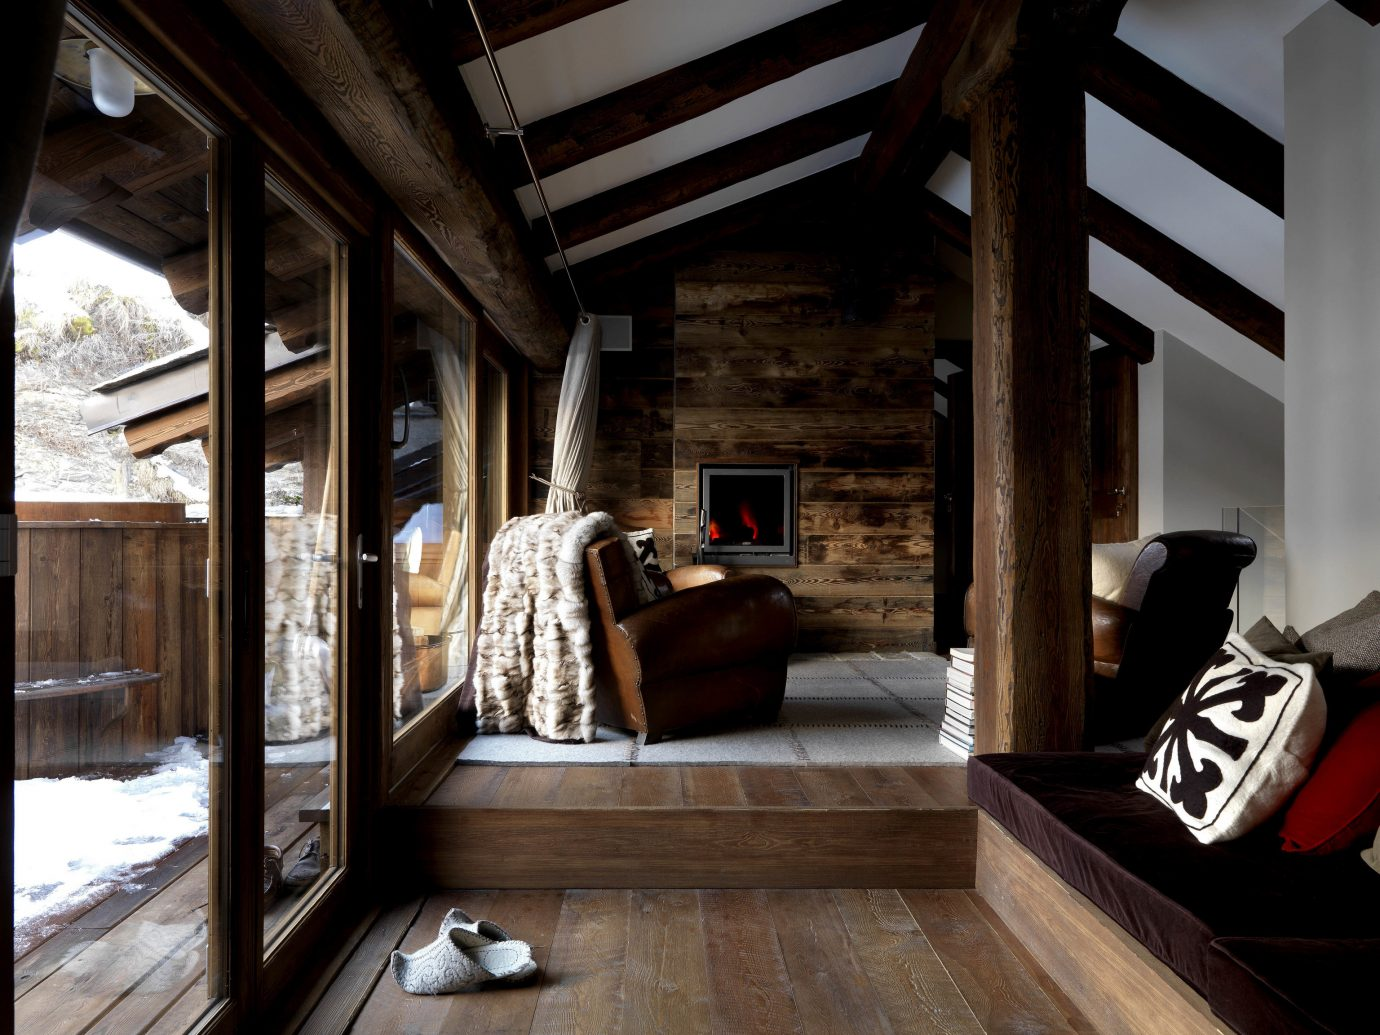 Hotels Luxury Travel Mountains + Skiing Trip Ideas indoor Living building window house room home Architecture estate interior design wood living room Design mansion floor cottage stone furniture